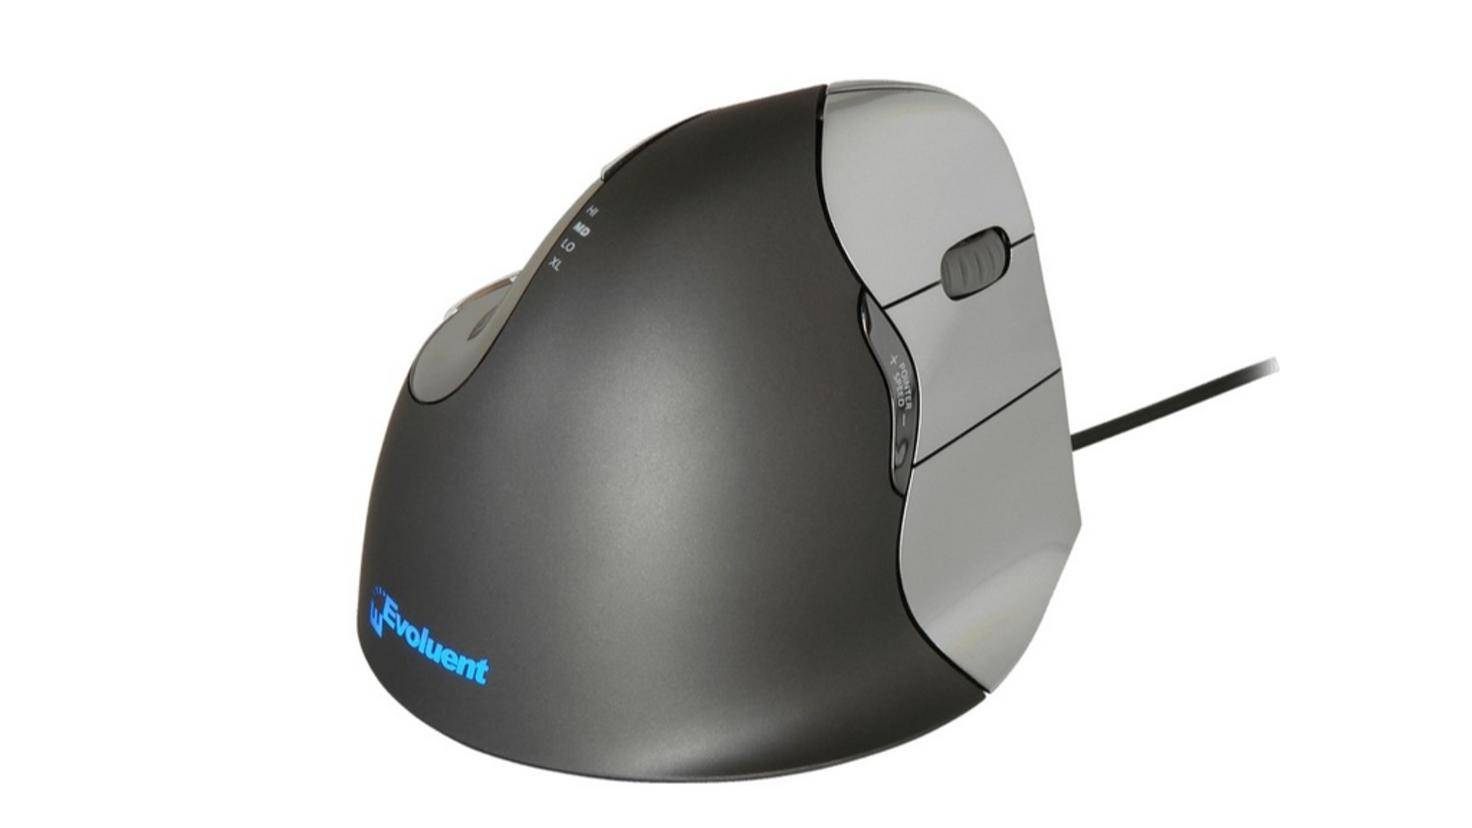 Evoluent-Vertical-Mouse